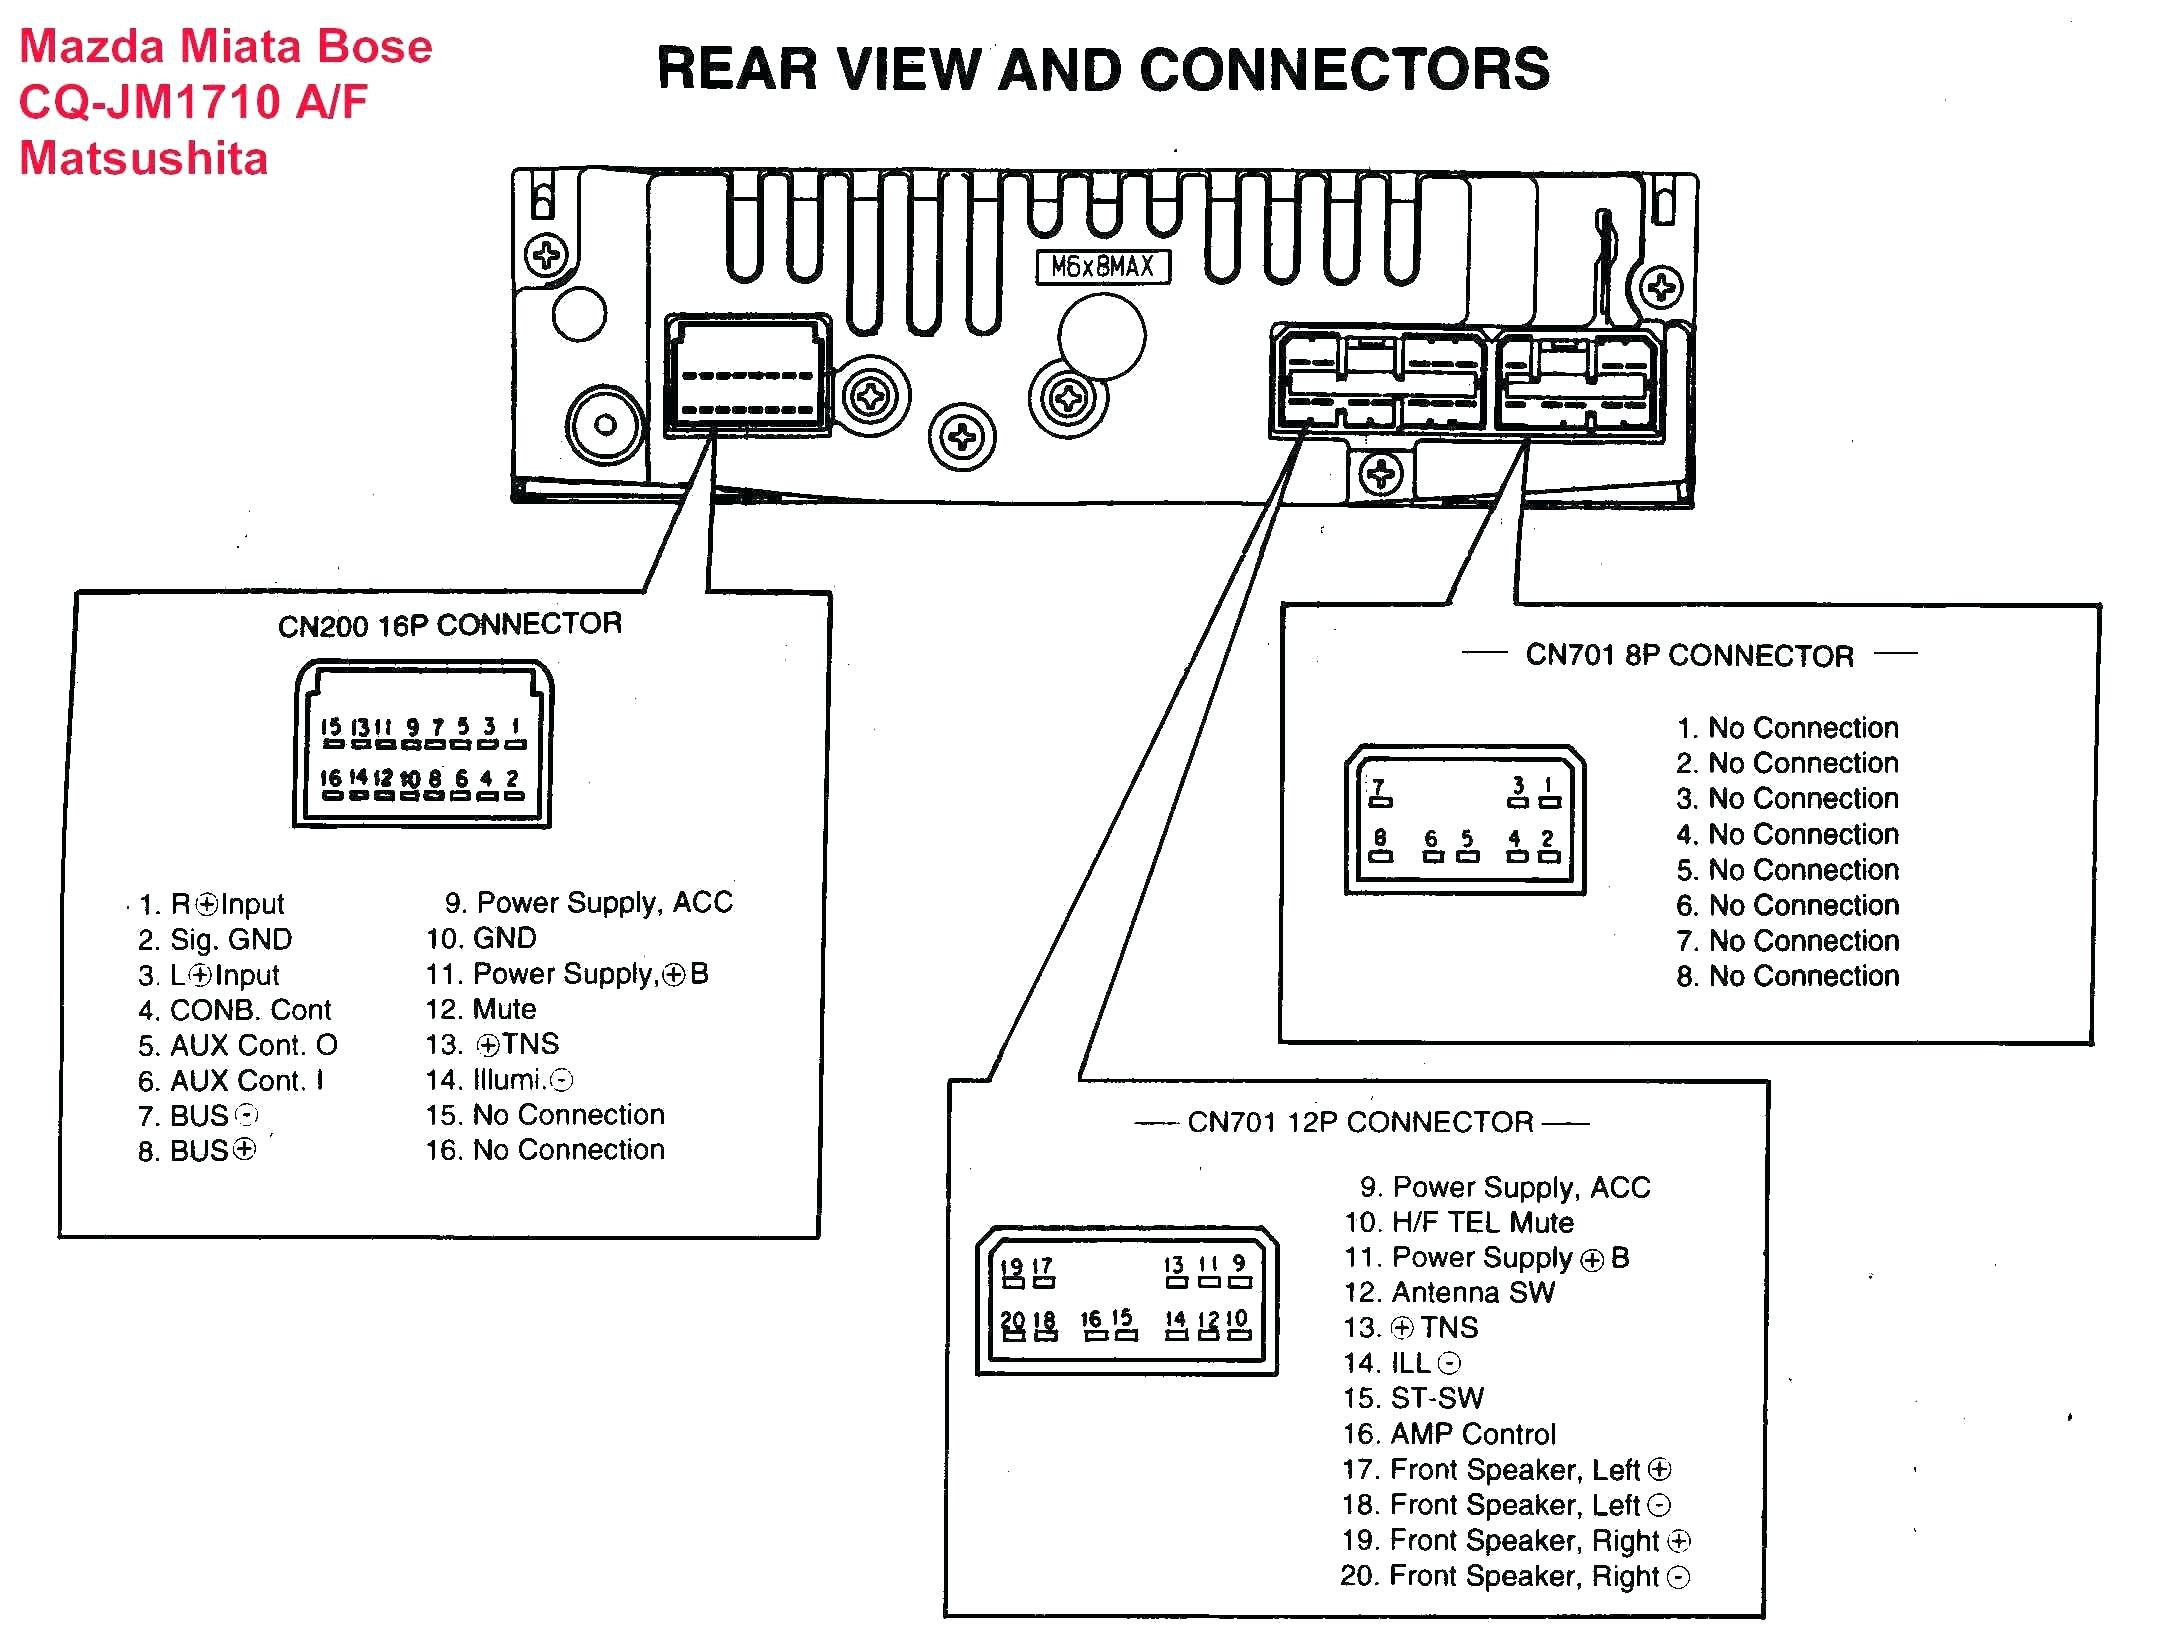 Sony Cdx Gt520 Car Stereo Wiring Diagram | Wiring Liry Harness Diagram Pin Sony Wiring Cdx C on